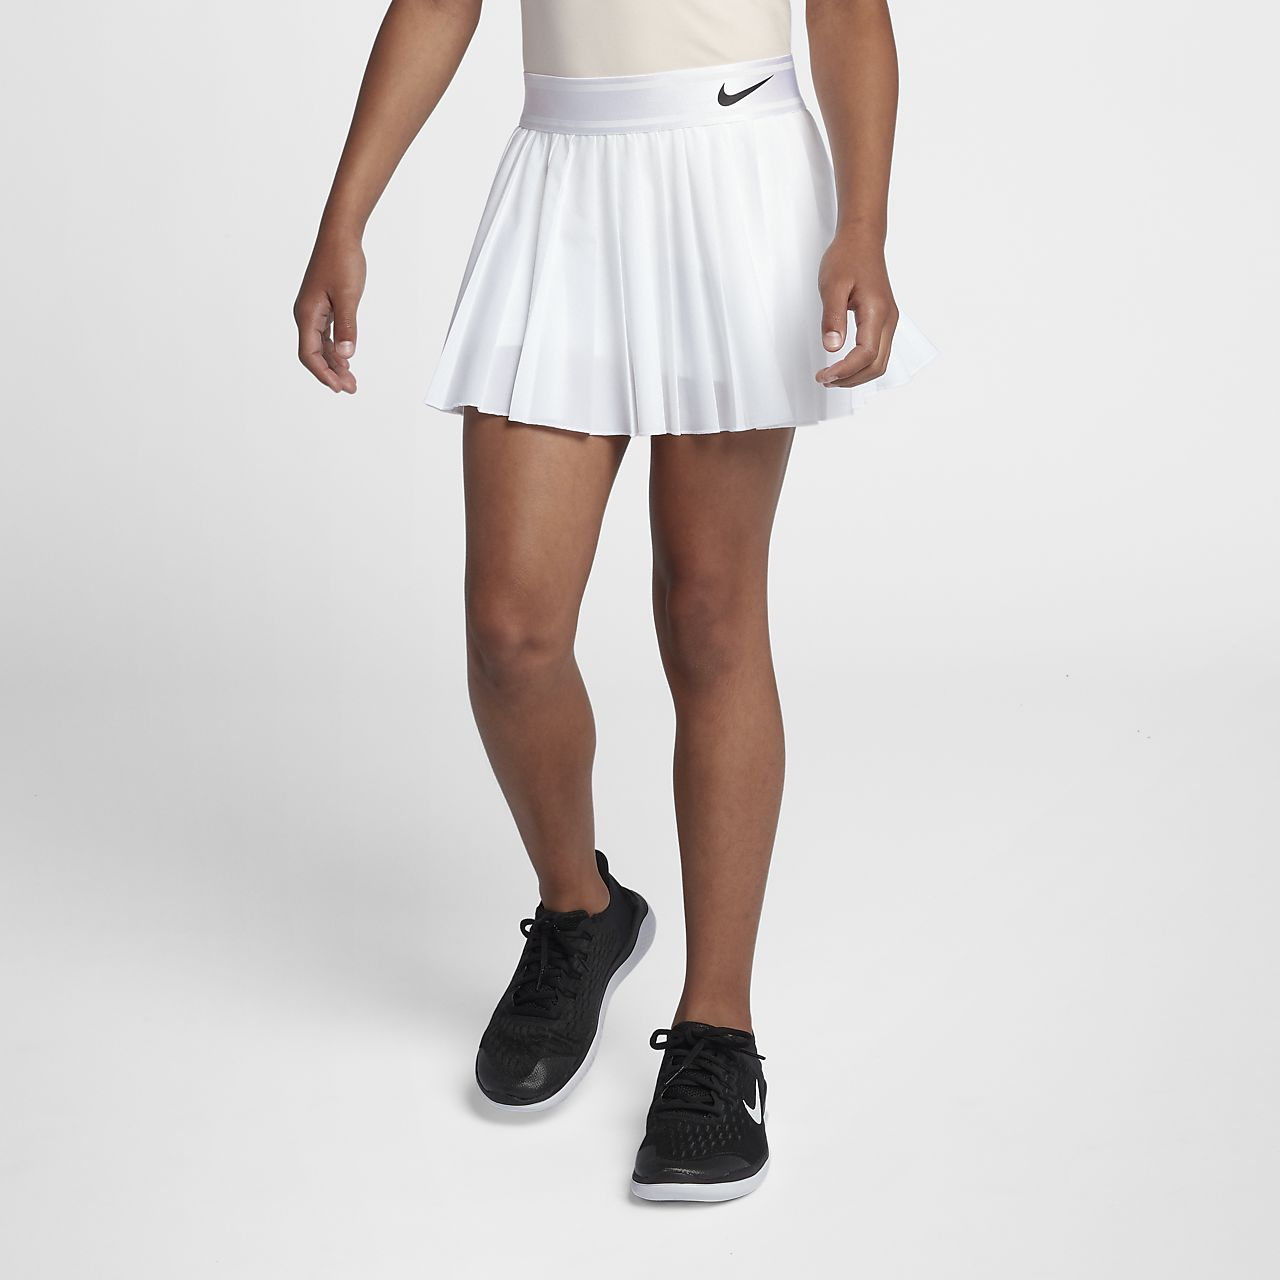 promo code 9cd04 5e90f ... NikeCourt Victory Older Kids  (Girls ) Tennis Skirt